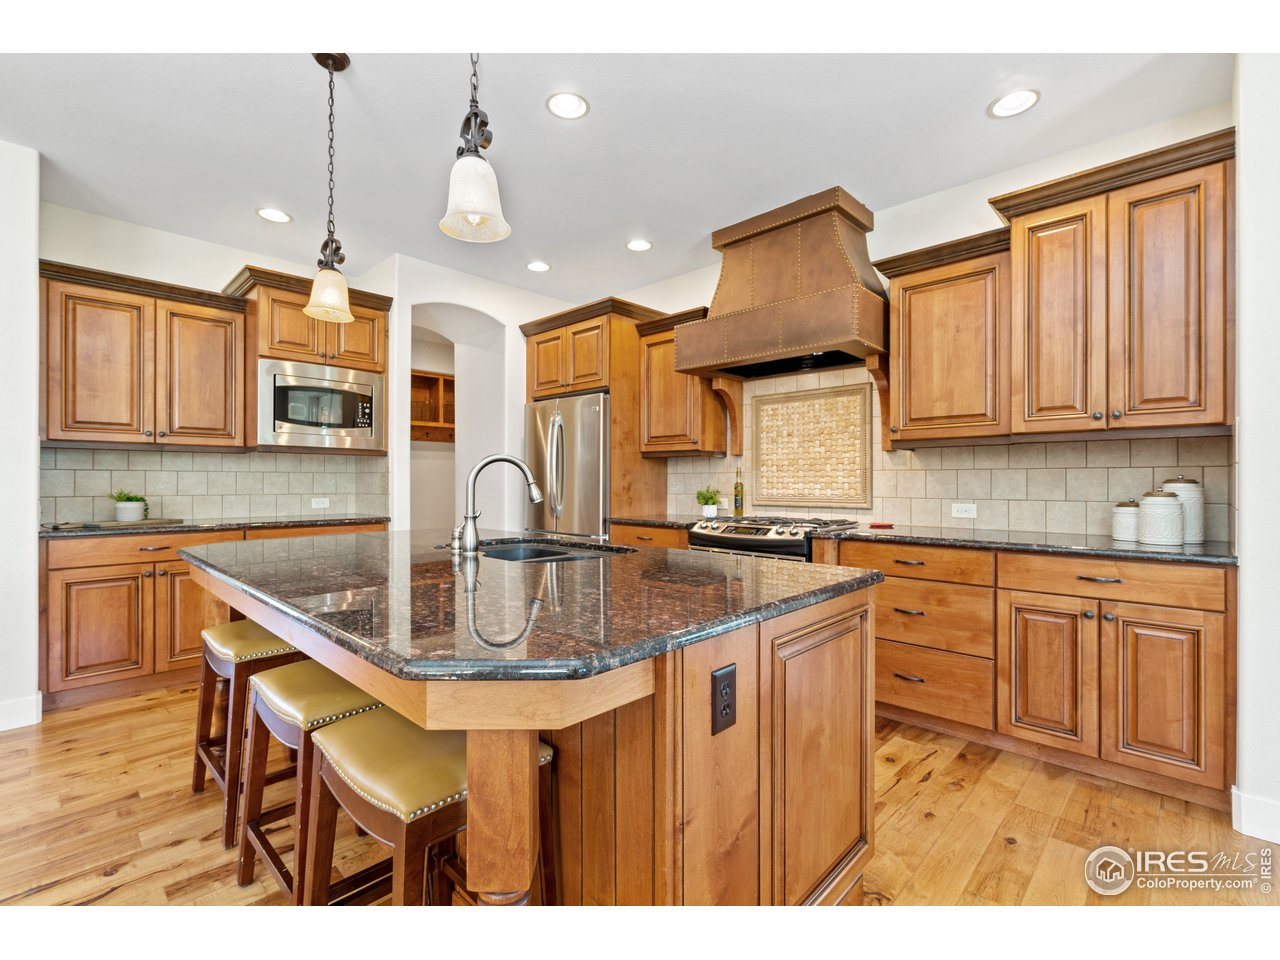 Gourmet Kitchen with Large Island